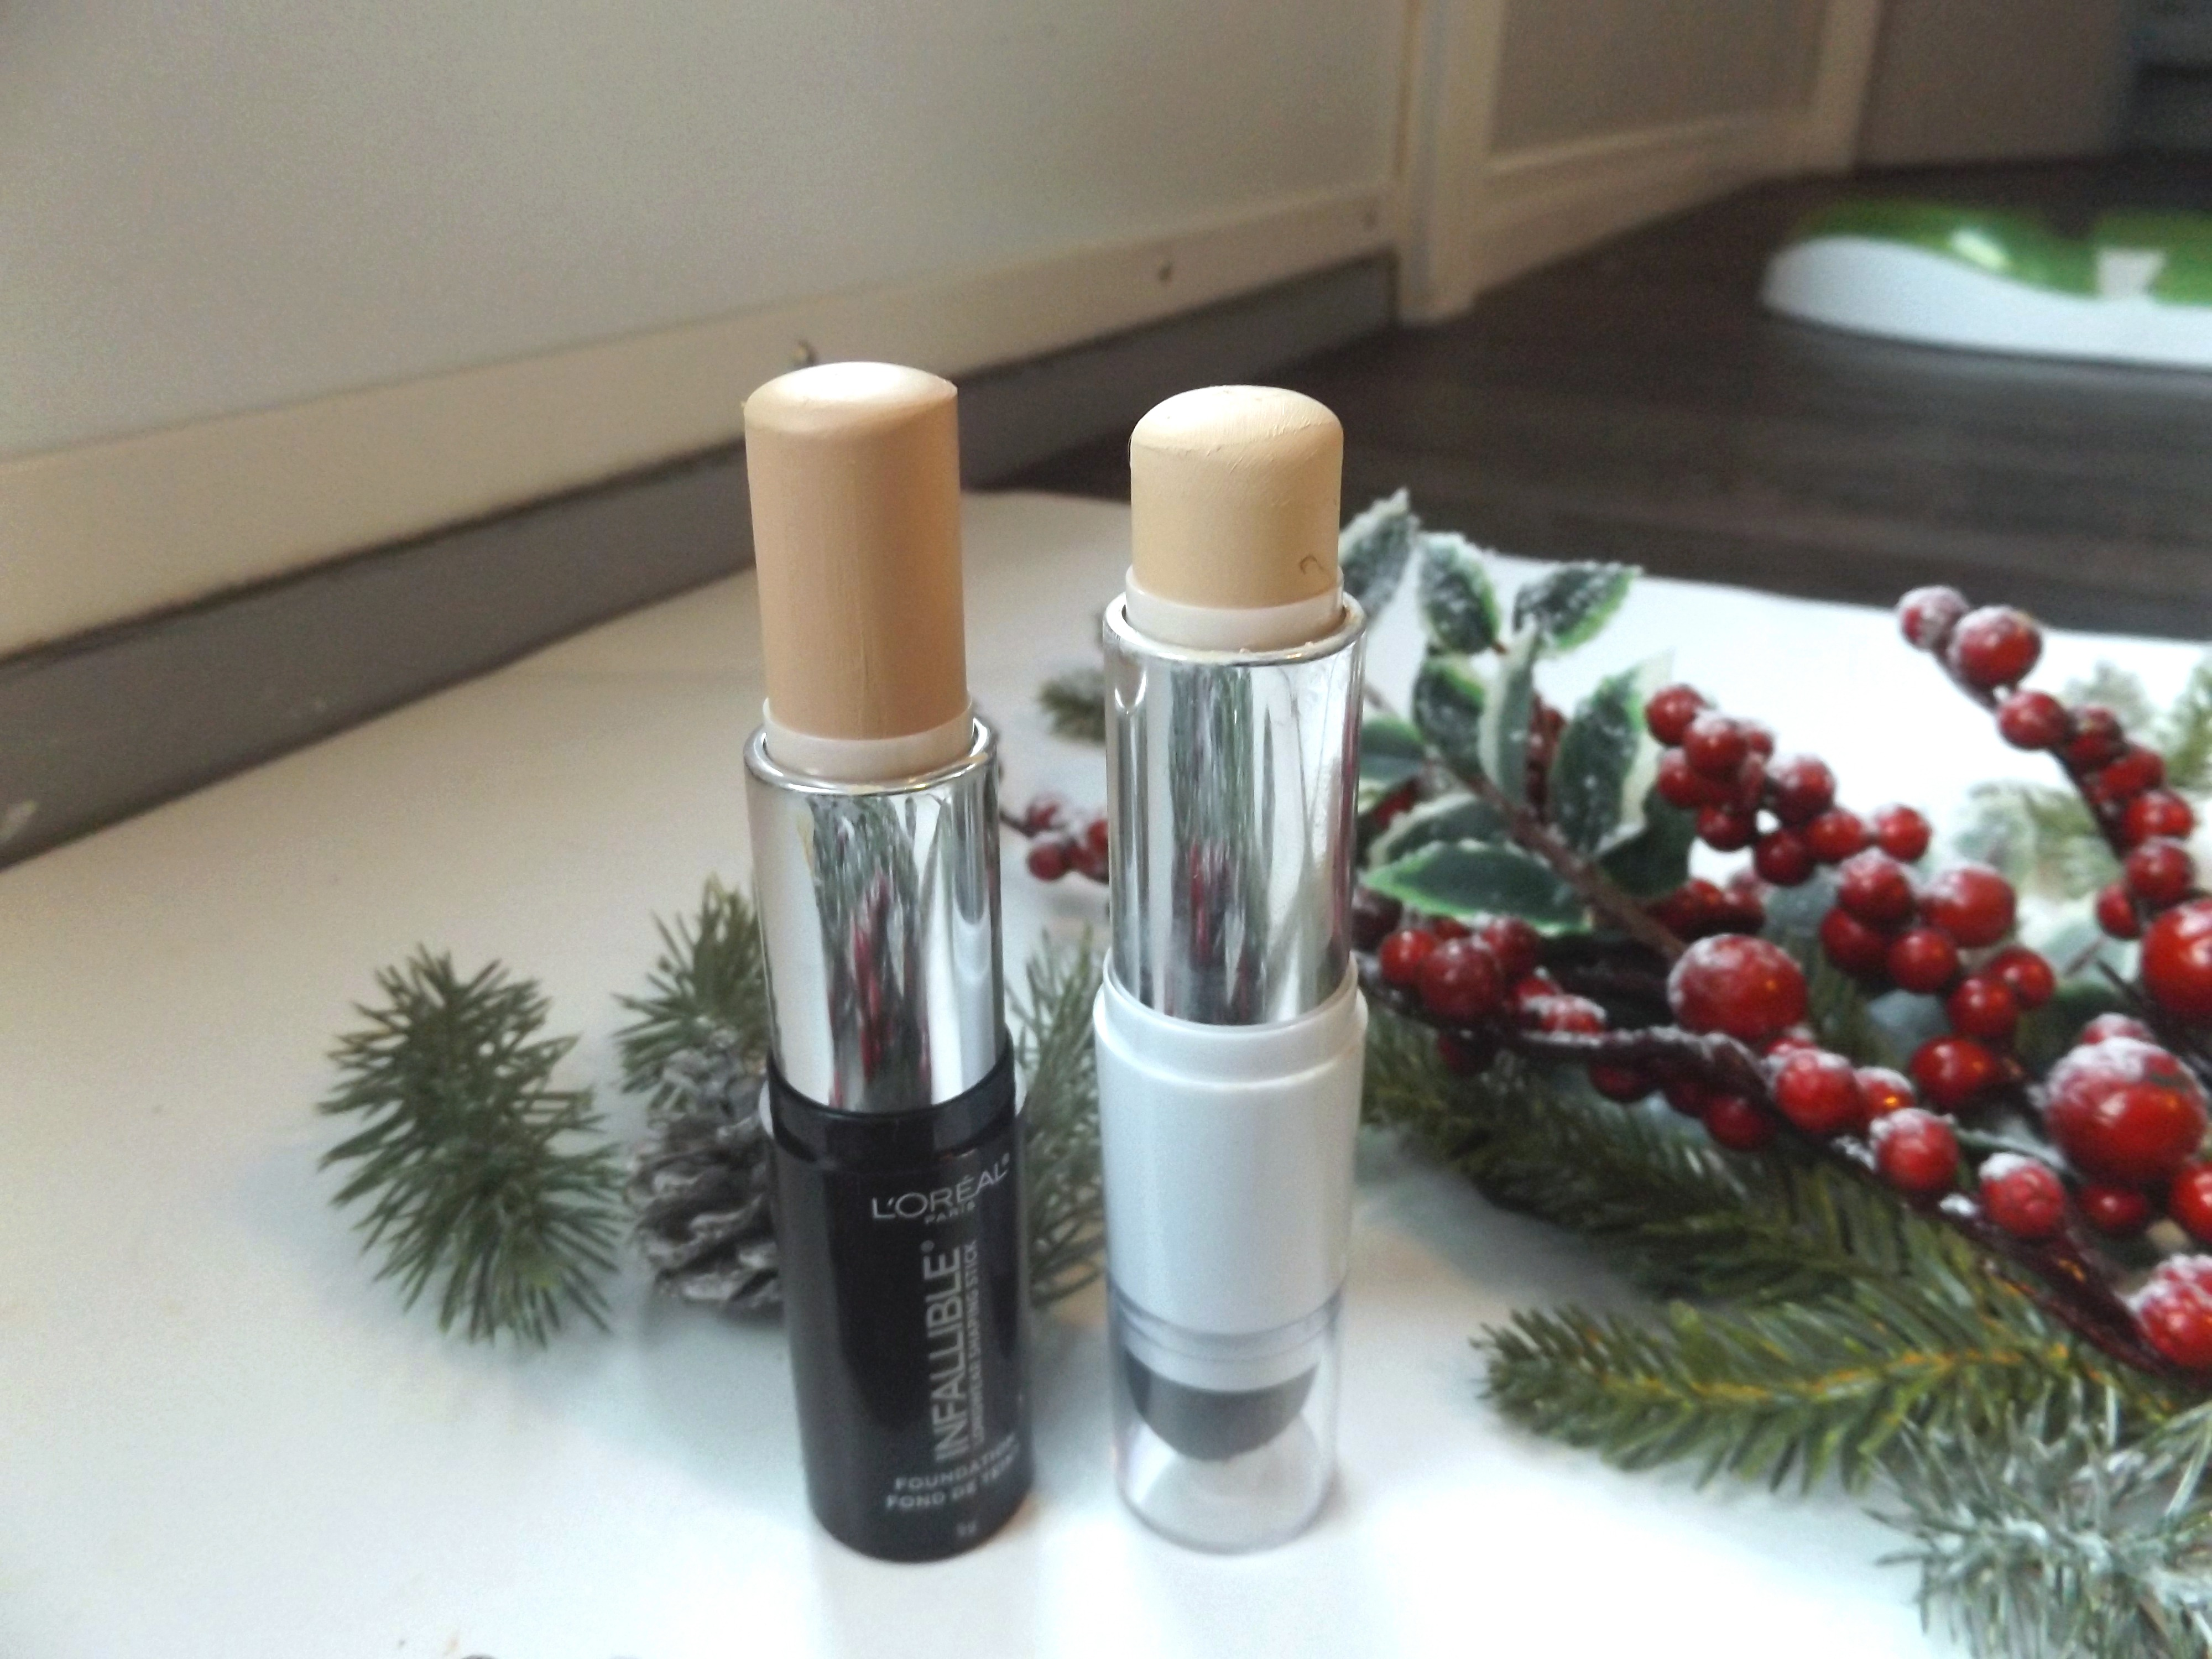 12 Days of Blogging Day 8: L'Oreal Shaping Stick vs